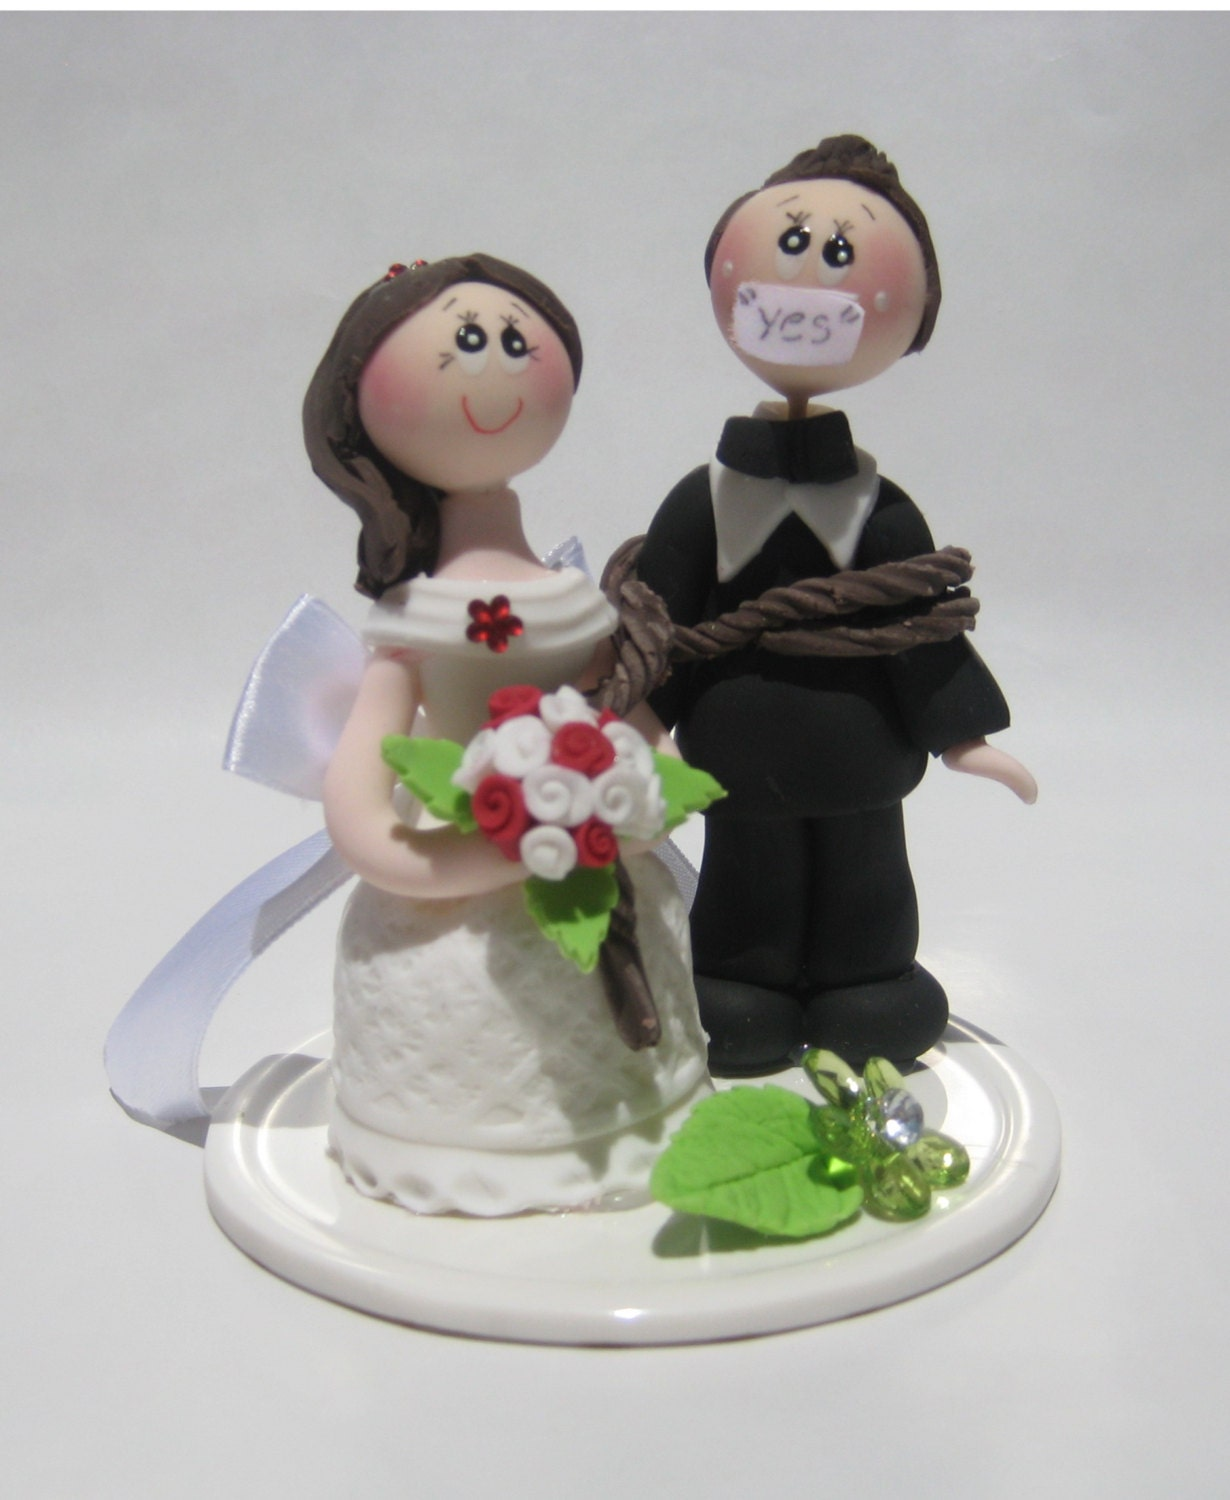 Funny wedding cake topper, funny cake topper, funny topper, groom tied up by bride